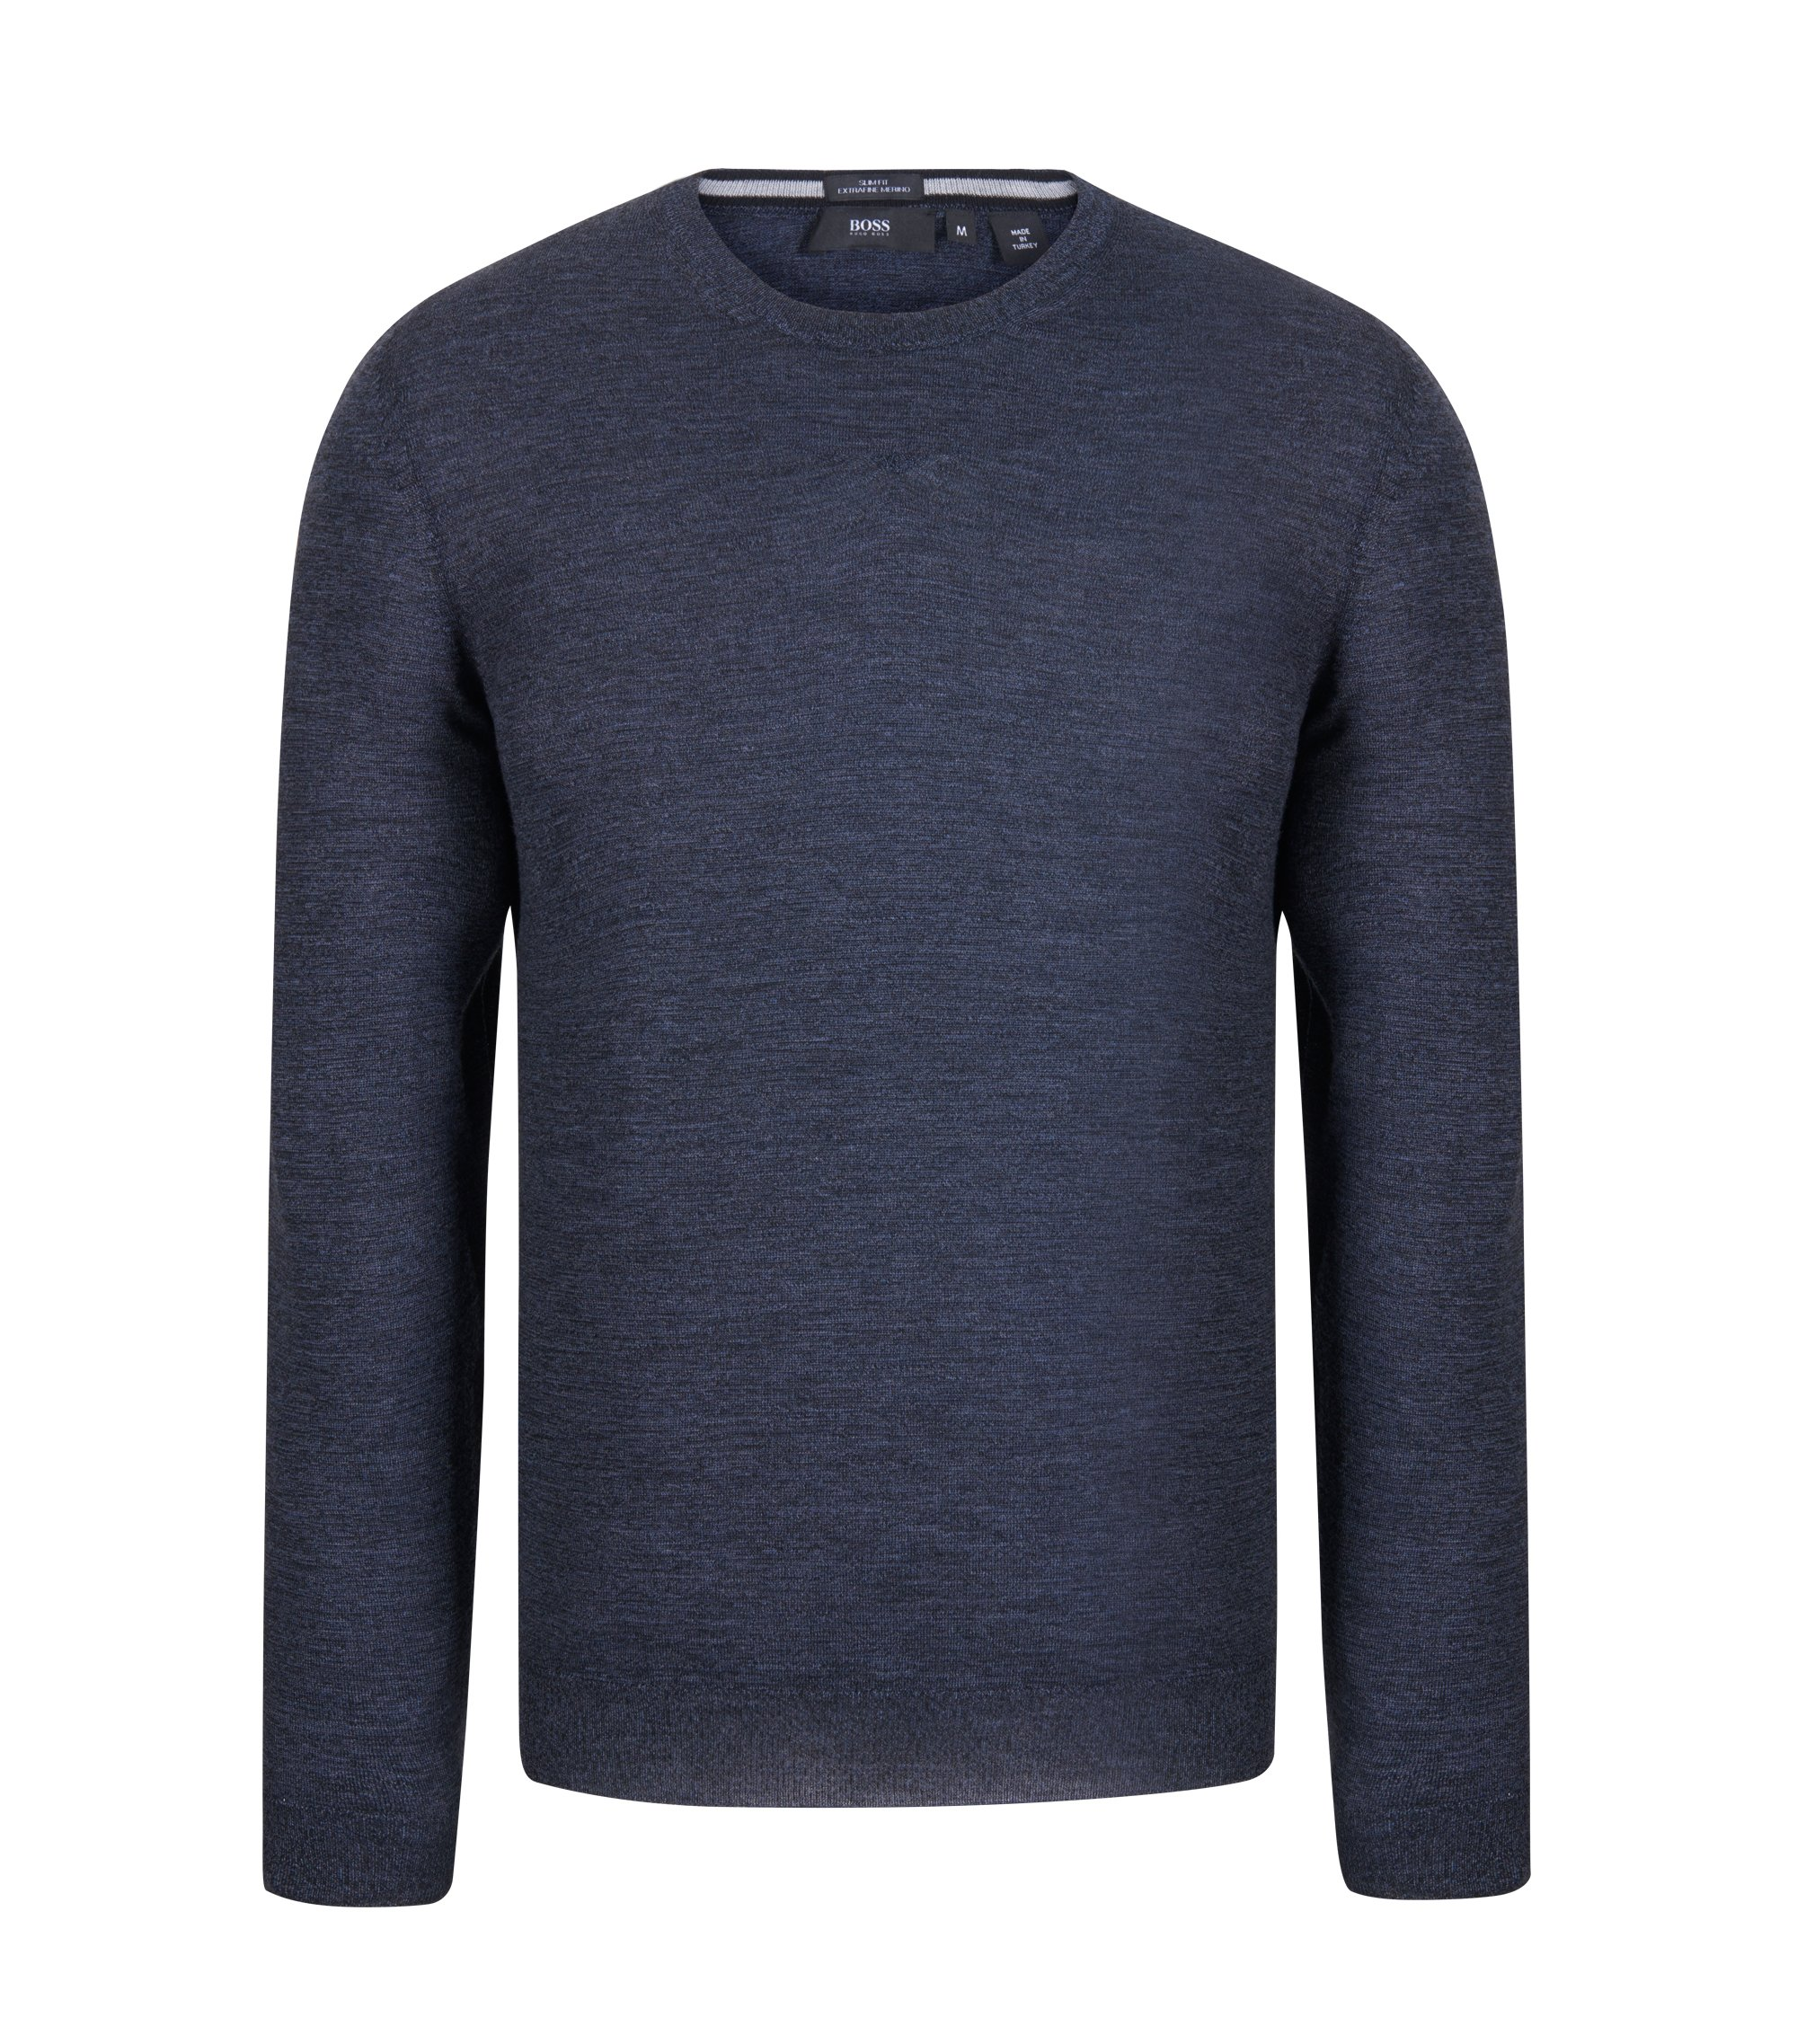 Extra-Fine Merino Wool Sweater | Leno N, Dark Blue